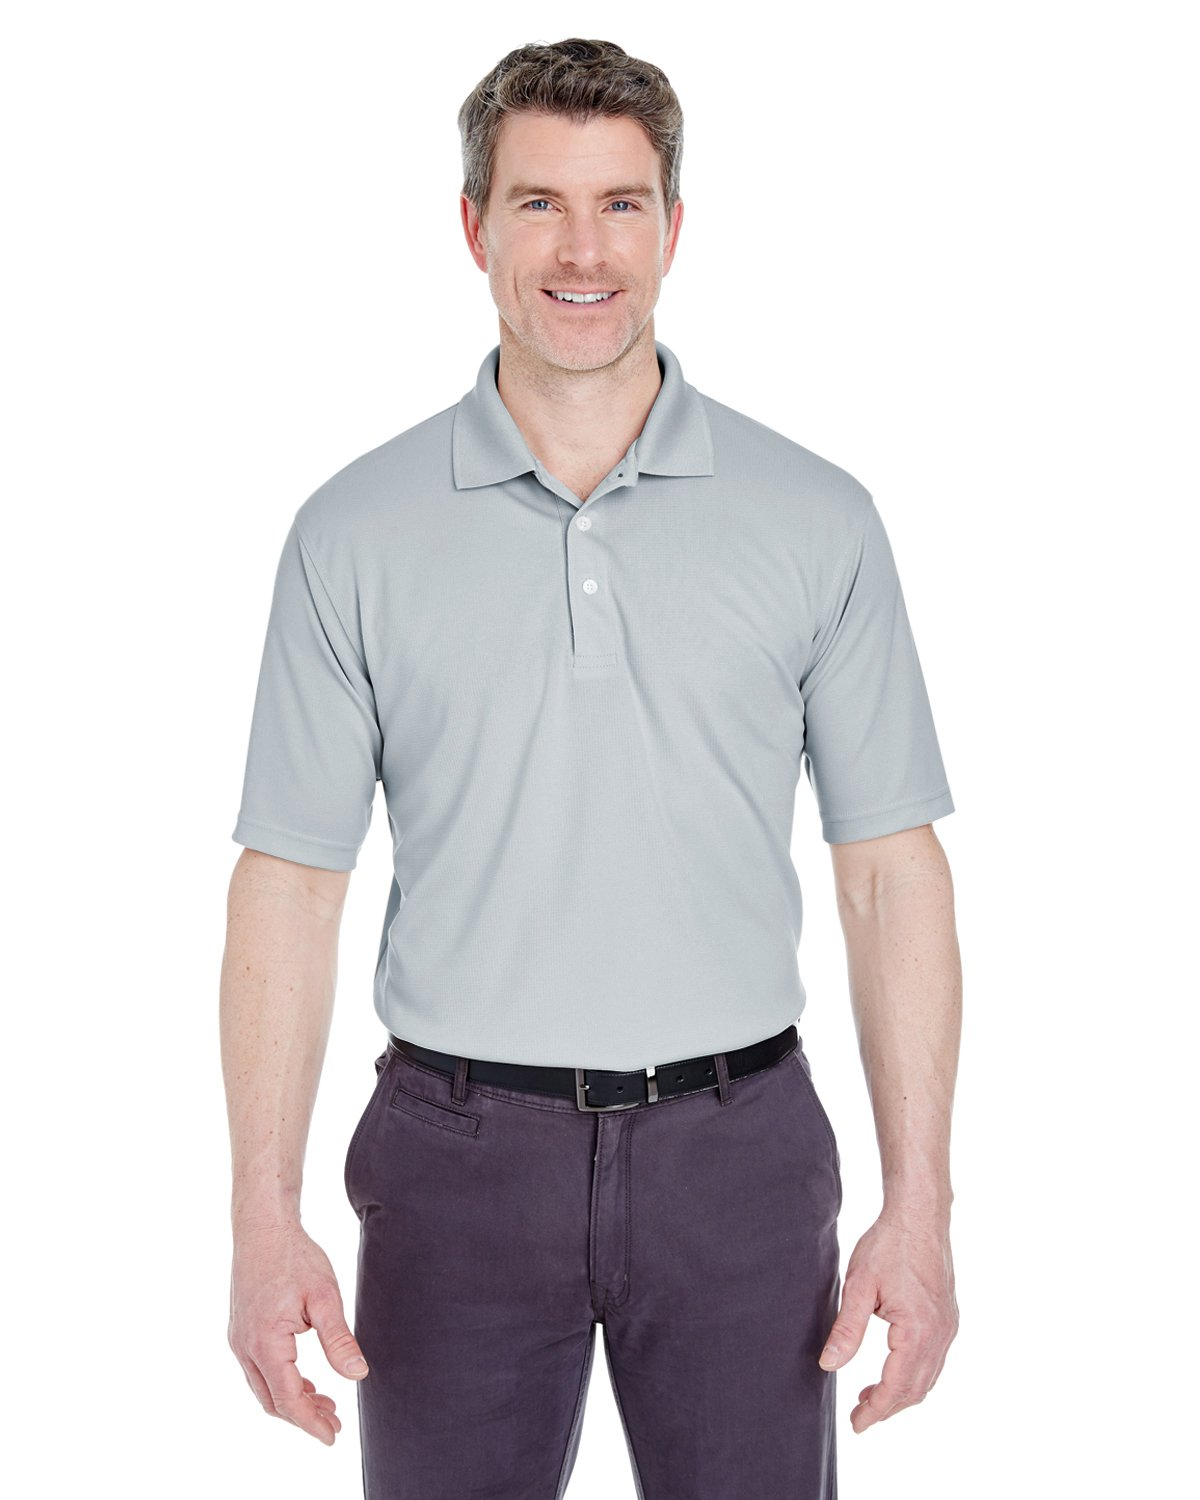 8445 UC MEN STAIN RELEASE PERF POLO SILVER 4XL UltraClub